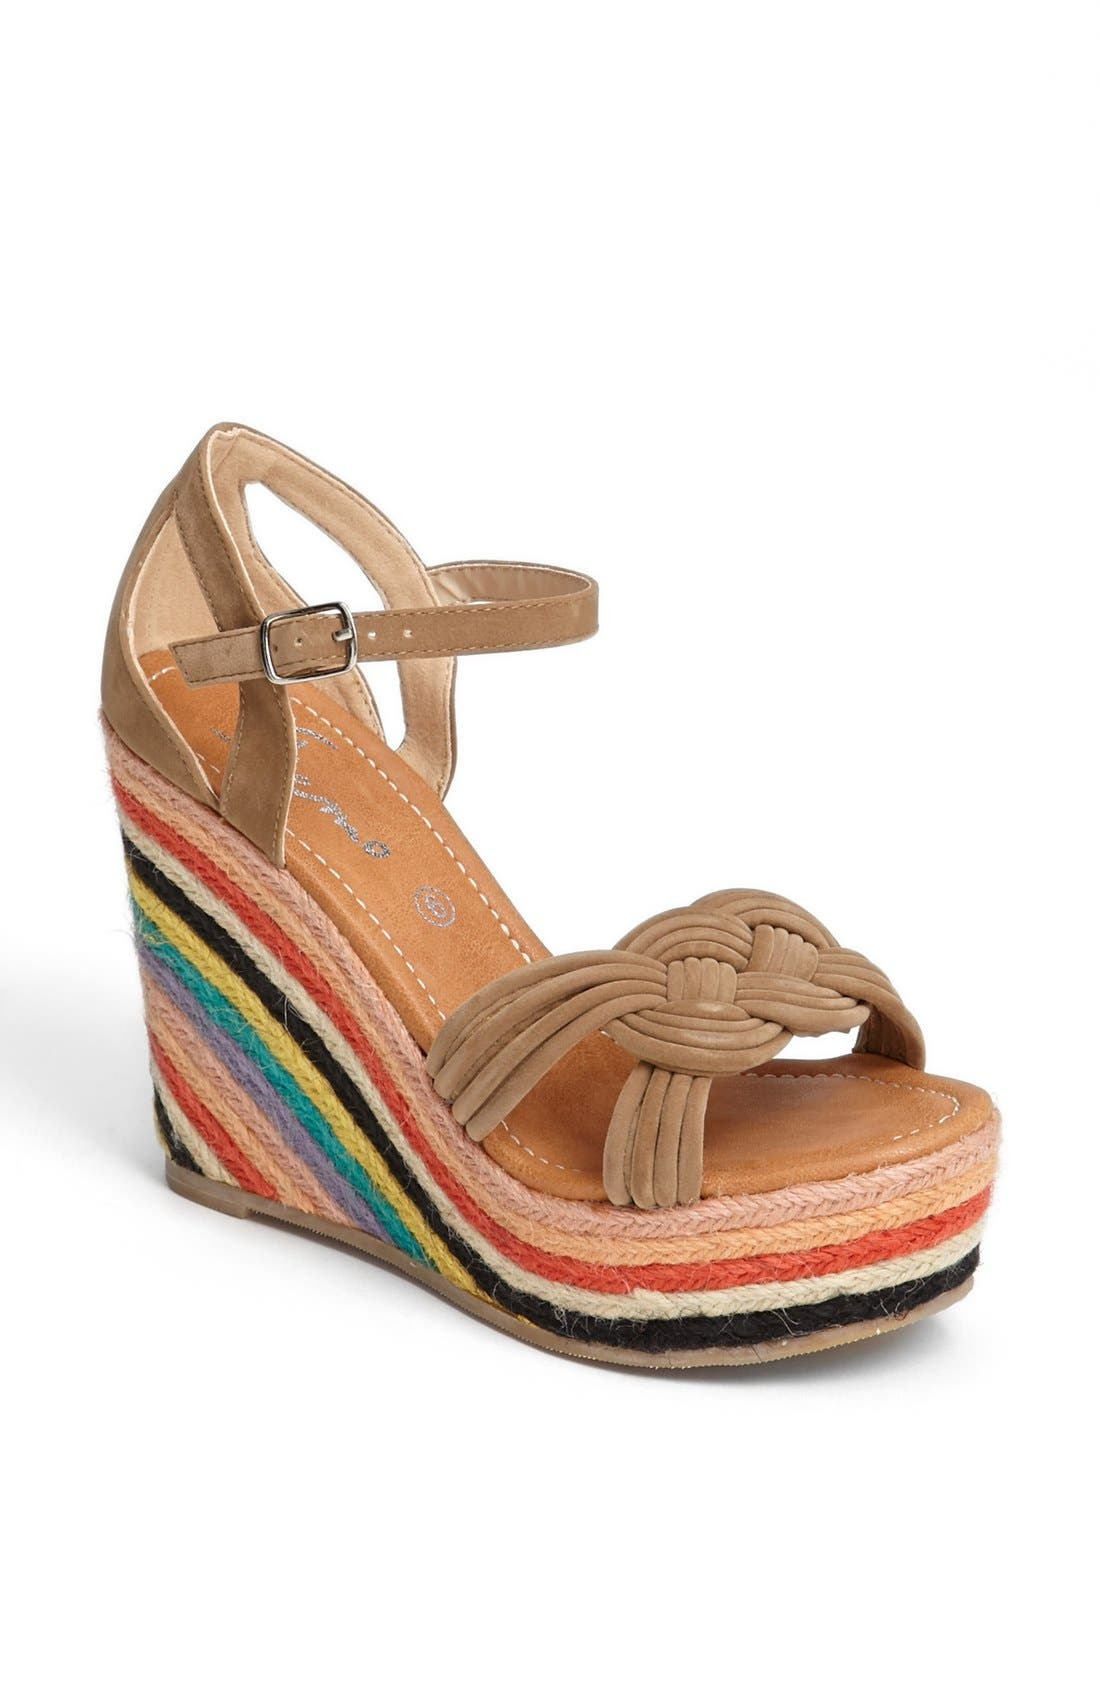 Main Image - Skemo 'Bow' Wedge Sandal